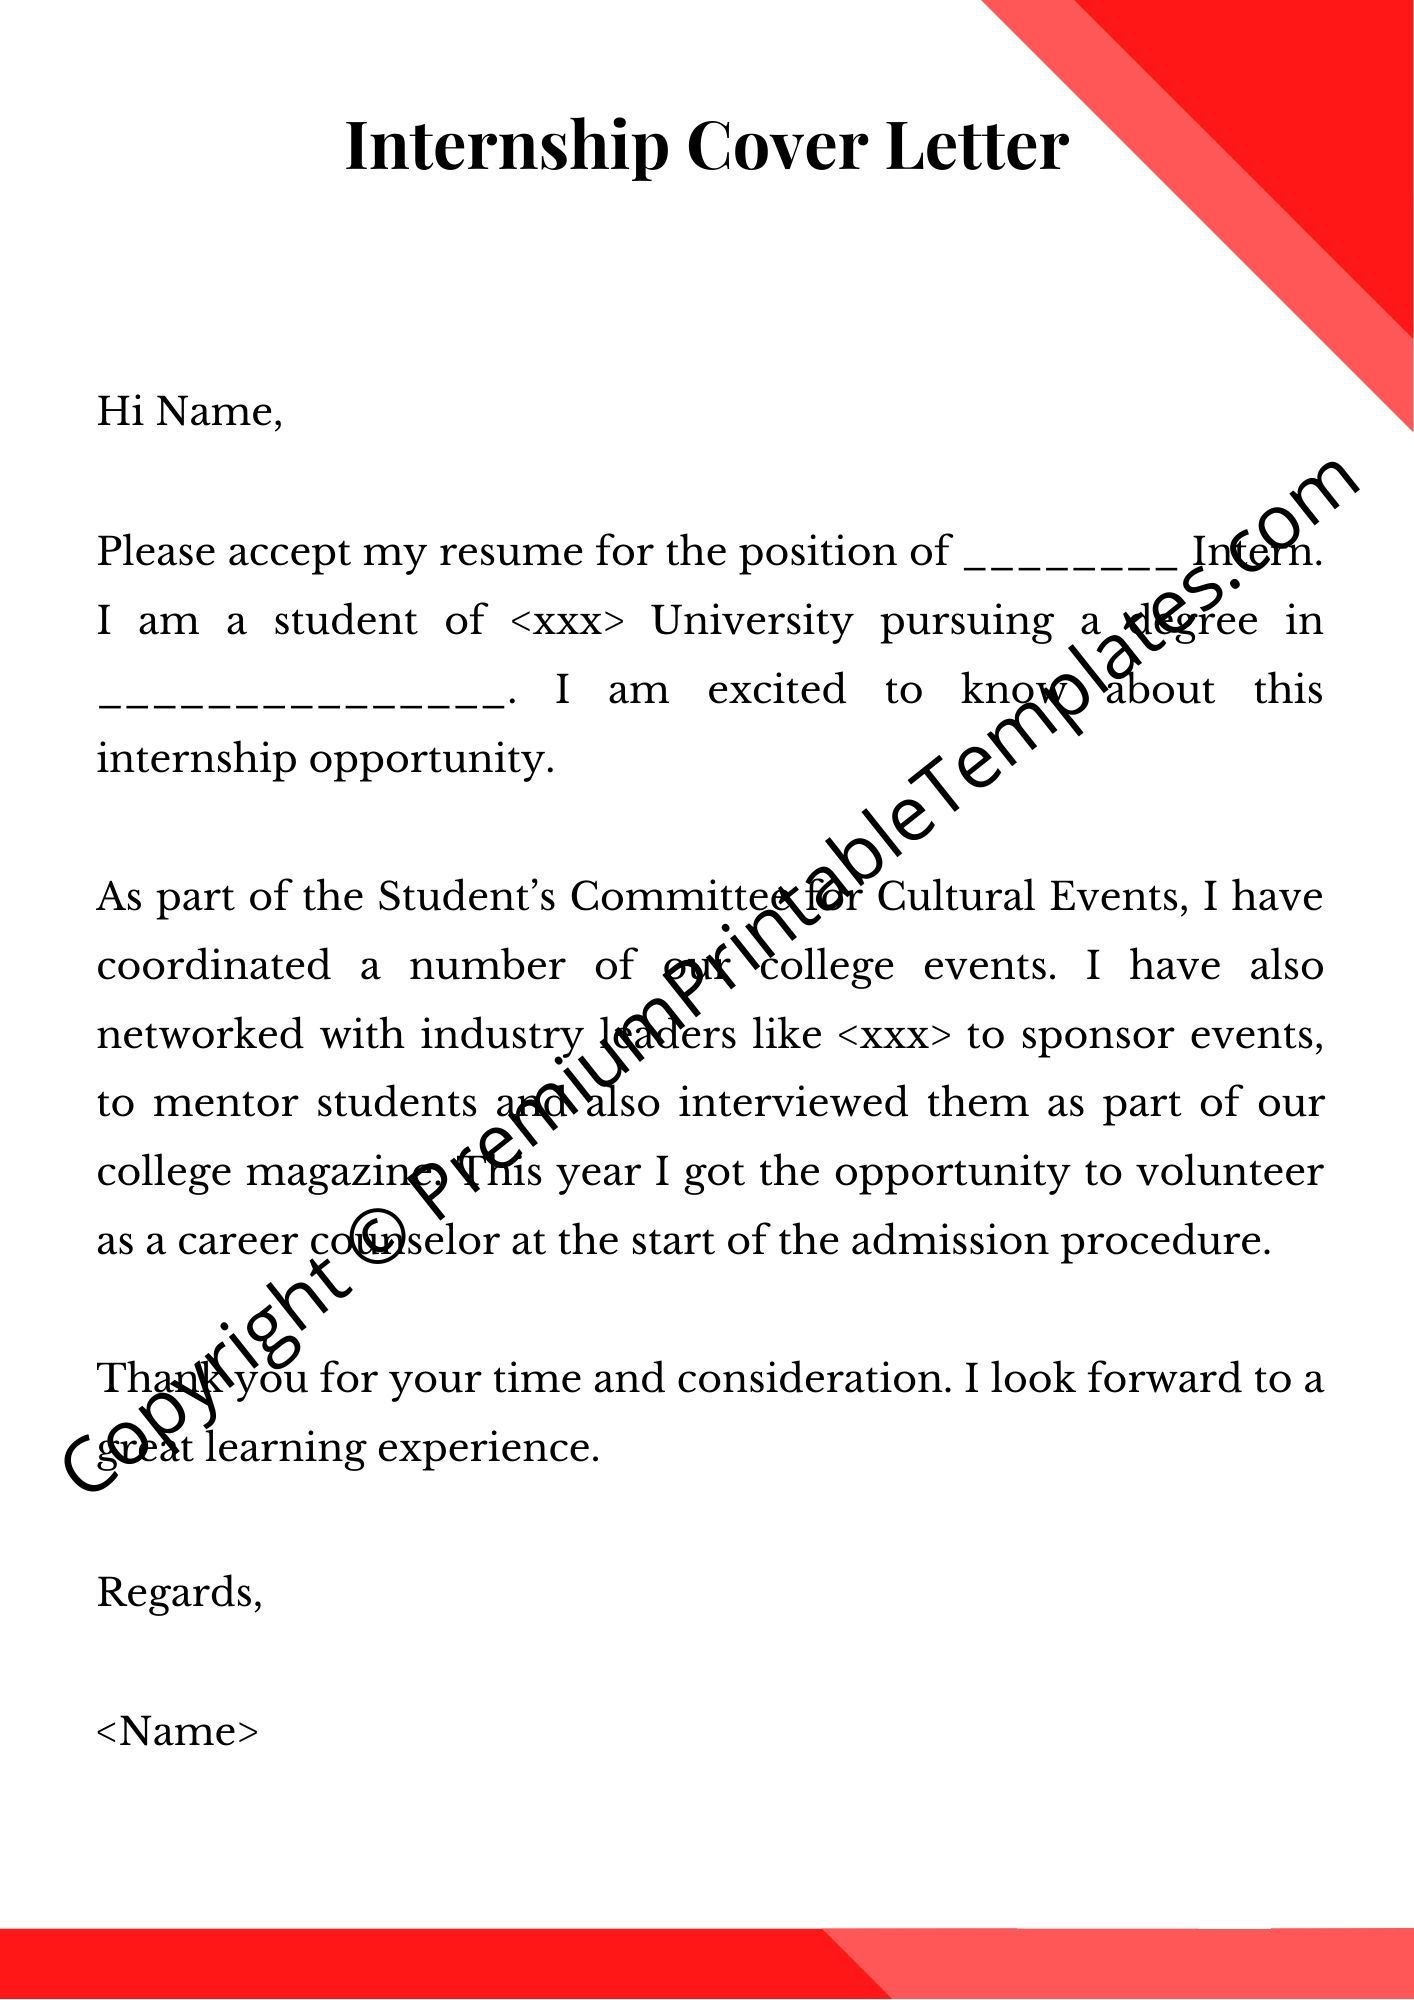 001 Impressive Cover Letter For Internship Template Inspiration  Free Engineering Example SummerFull